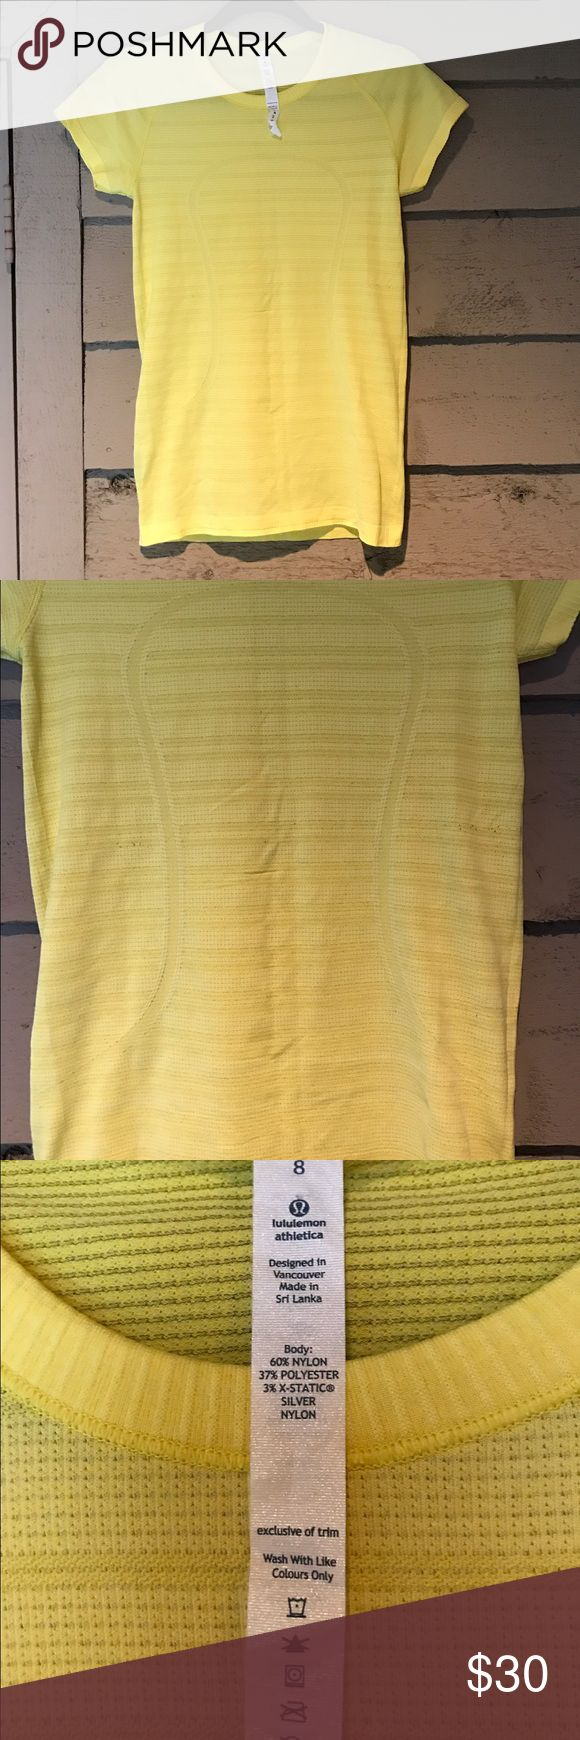 Lululemon Swiftly Tech ShortSleeve Neon Yellow Top This breathable and lightweight lululemon top is fabulous! It's a neon yellow and has a large lululemon logo on the front. There is some minor pilling on the shirt but overall it's in good condition. lululemon athletica Tops